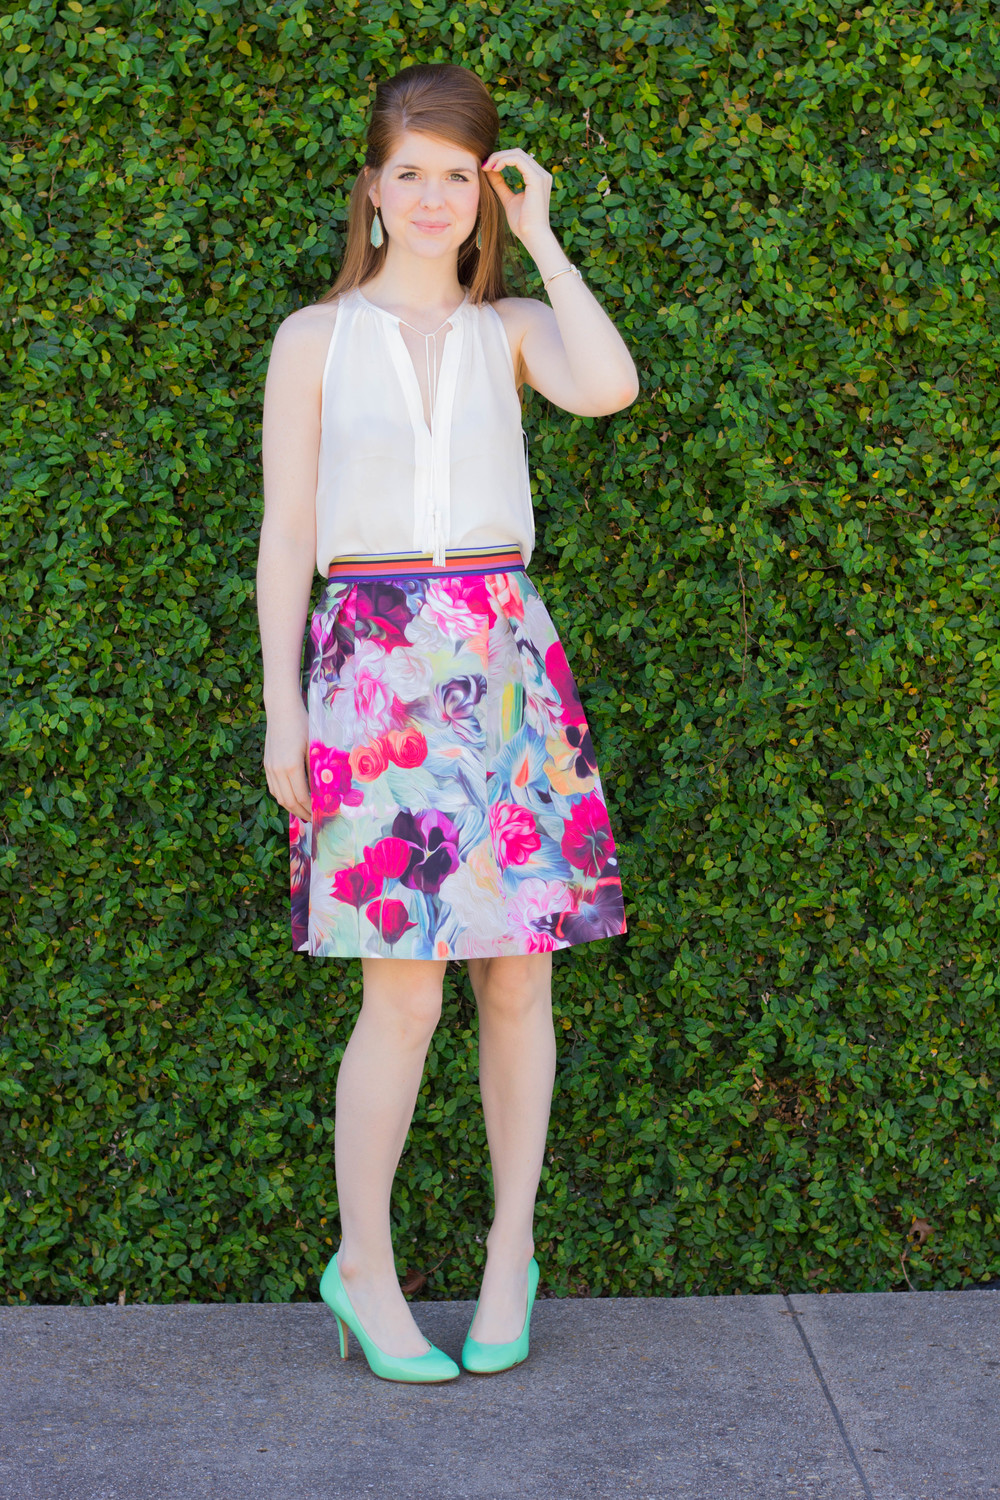 ted baker floral skirt, joie silk tank, j crew mint heels, kendra scott turquoise earrings